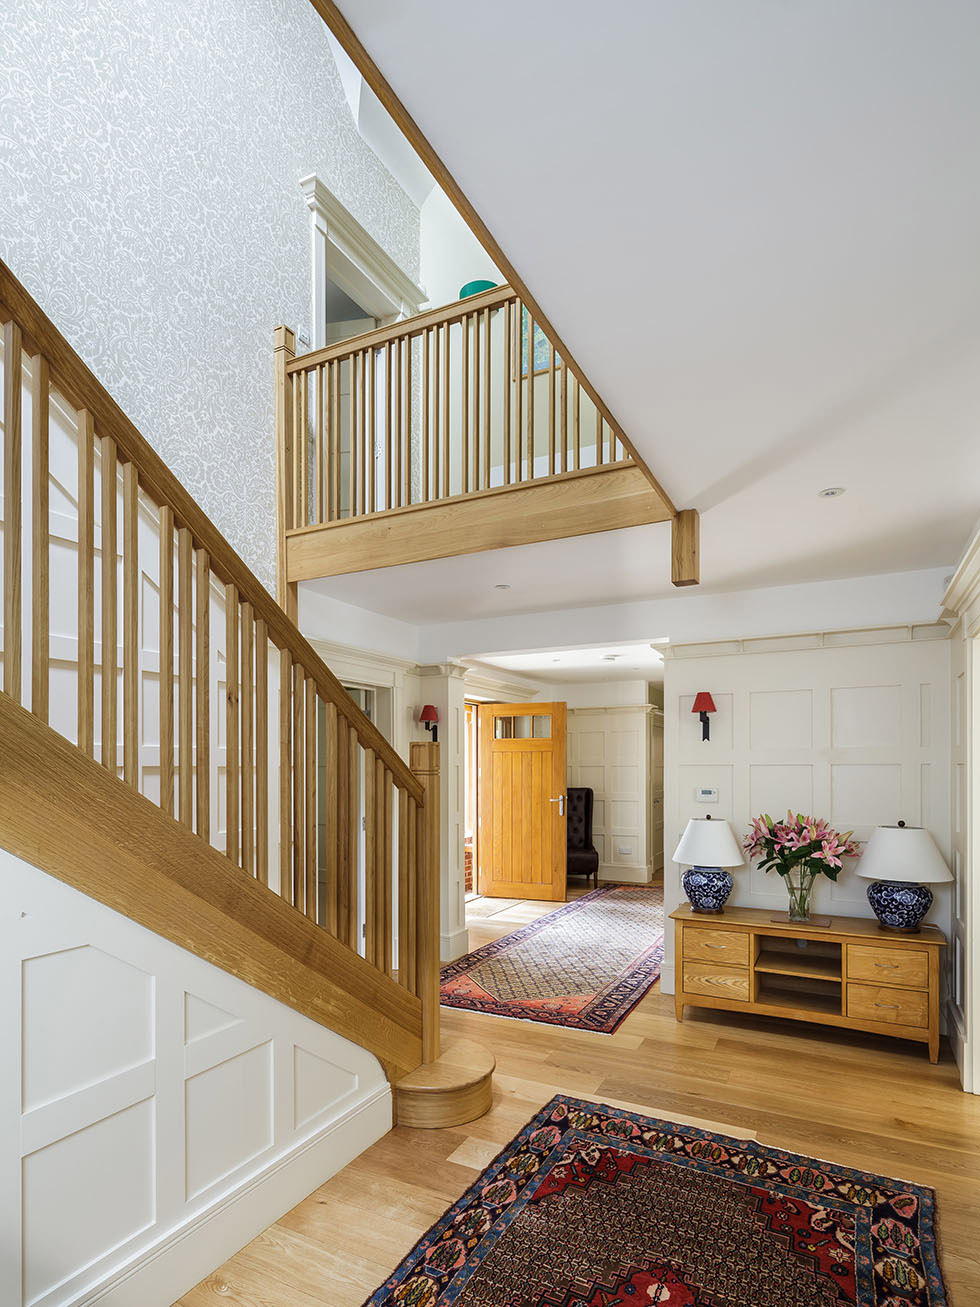 hallway in arts and crafts home with wooden staircase